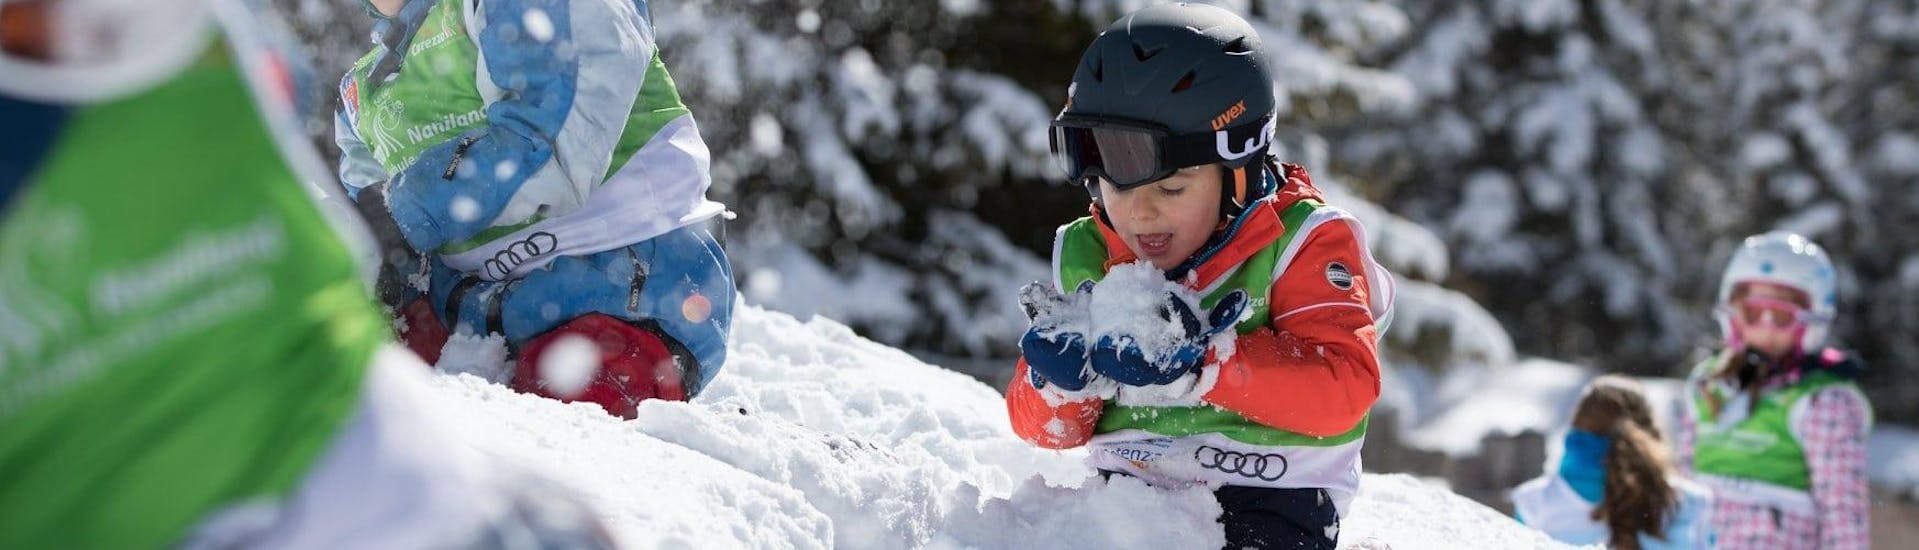 Kids are playing in the snow during Kids Ski Lessons (2-4 years) - First Timer organized by the Carezza Skischool.